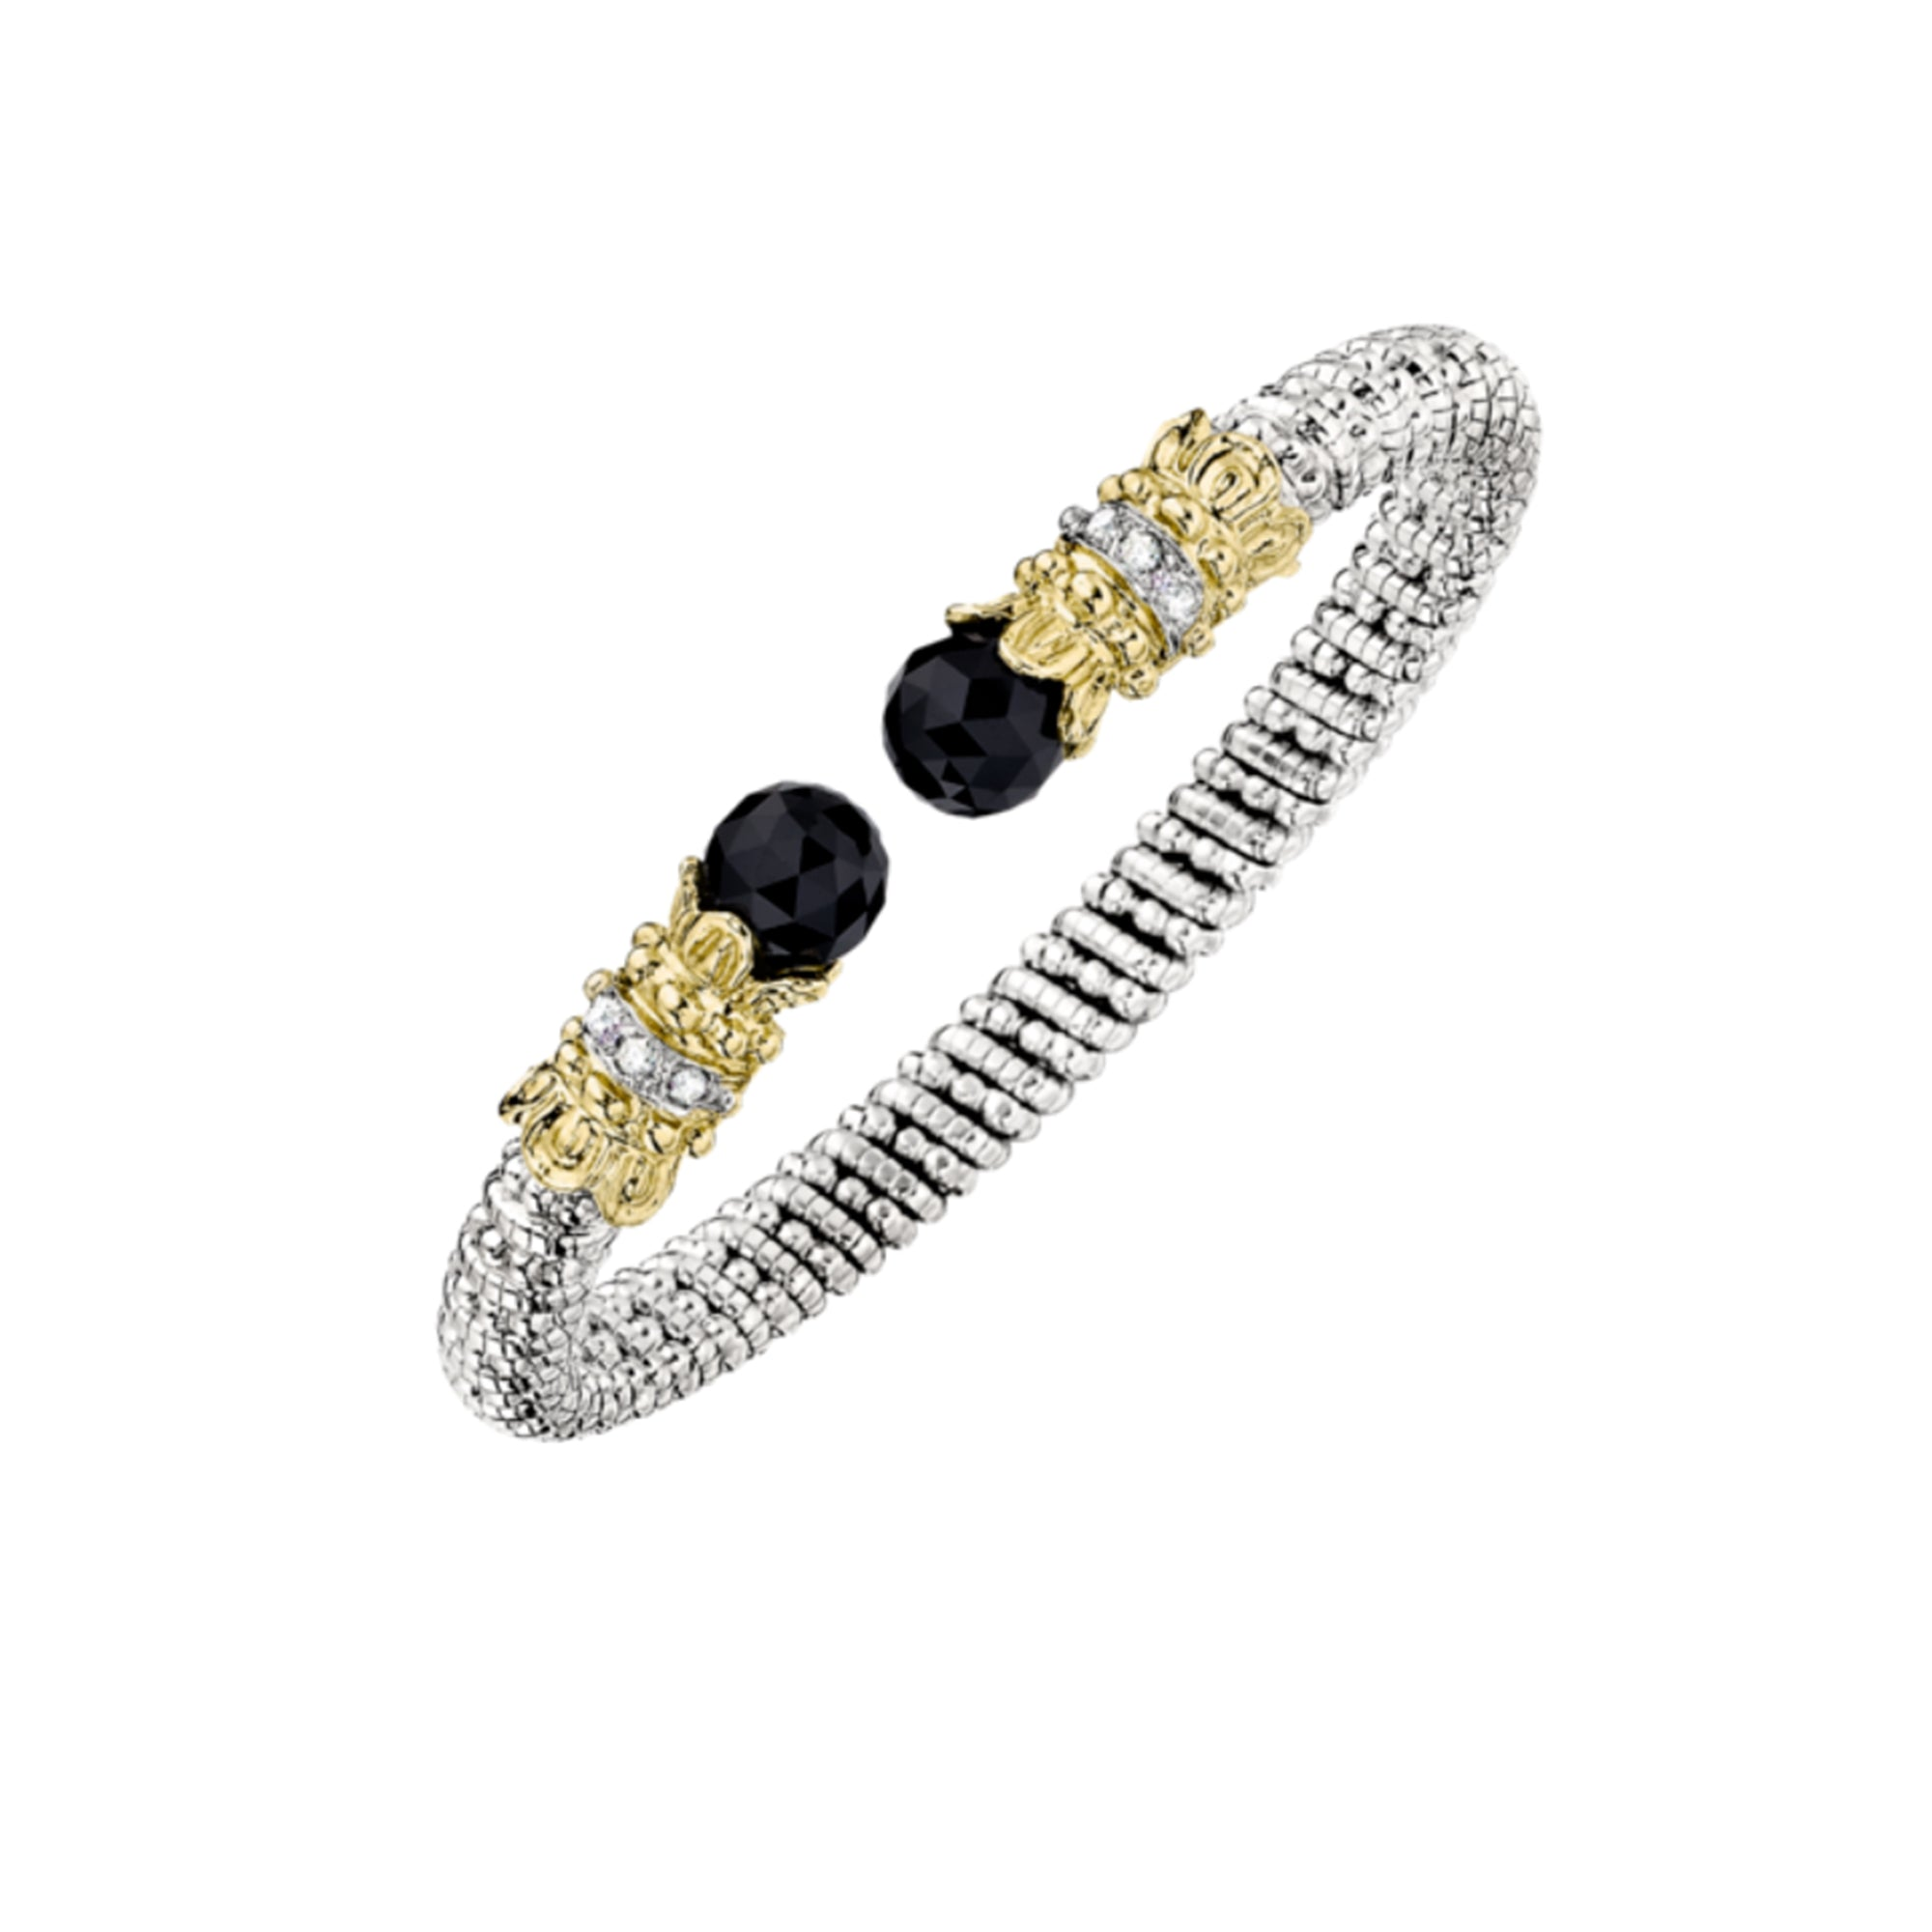 Black Onyx and Diamond Open Cuff Bracelet by Vahan - Talisman Collection Fine Jewelers